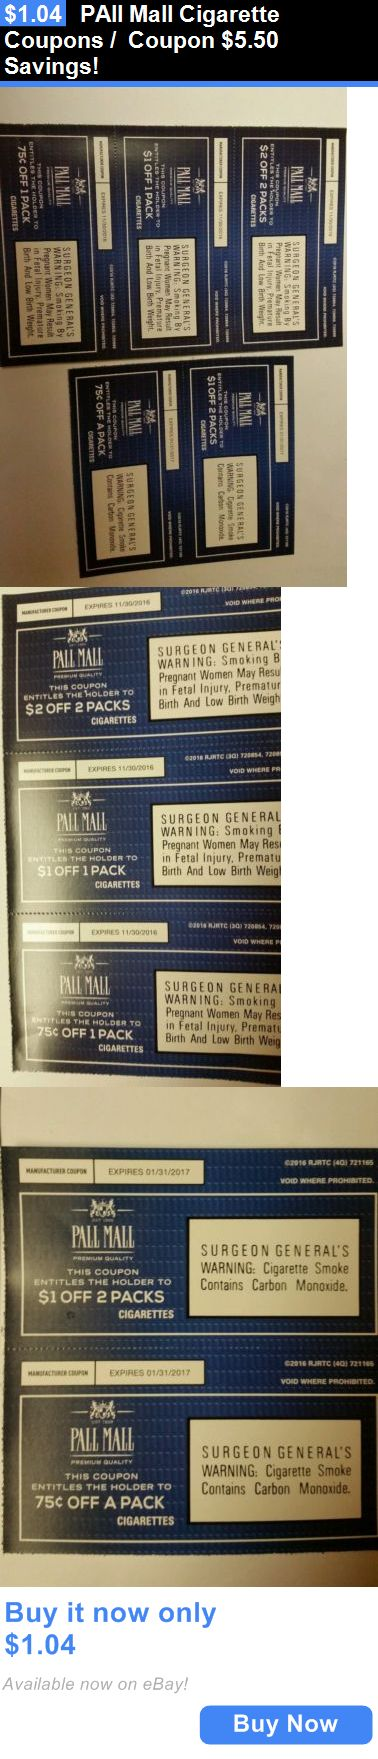 Coupons: Pall Mall Cigarette Coupons / Coupon $5.50 Savings! BUY IT NOW ONLY: $1.04